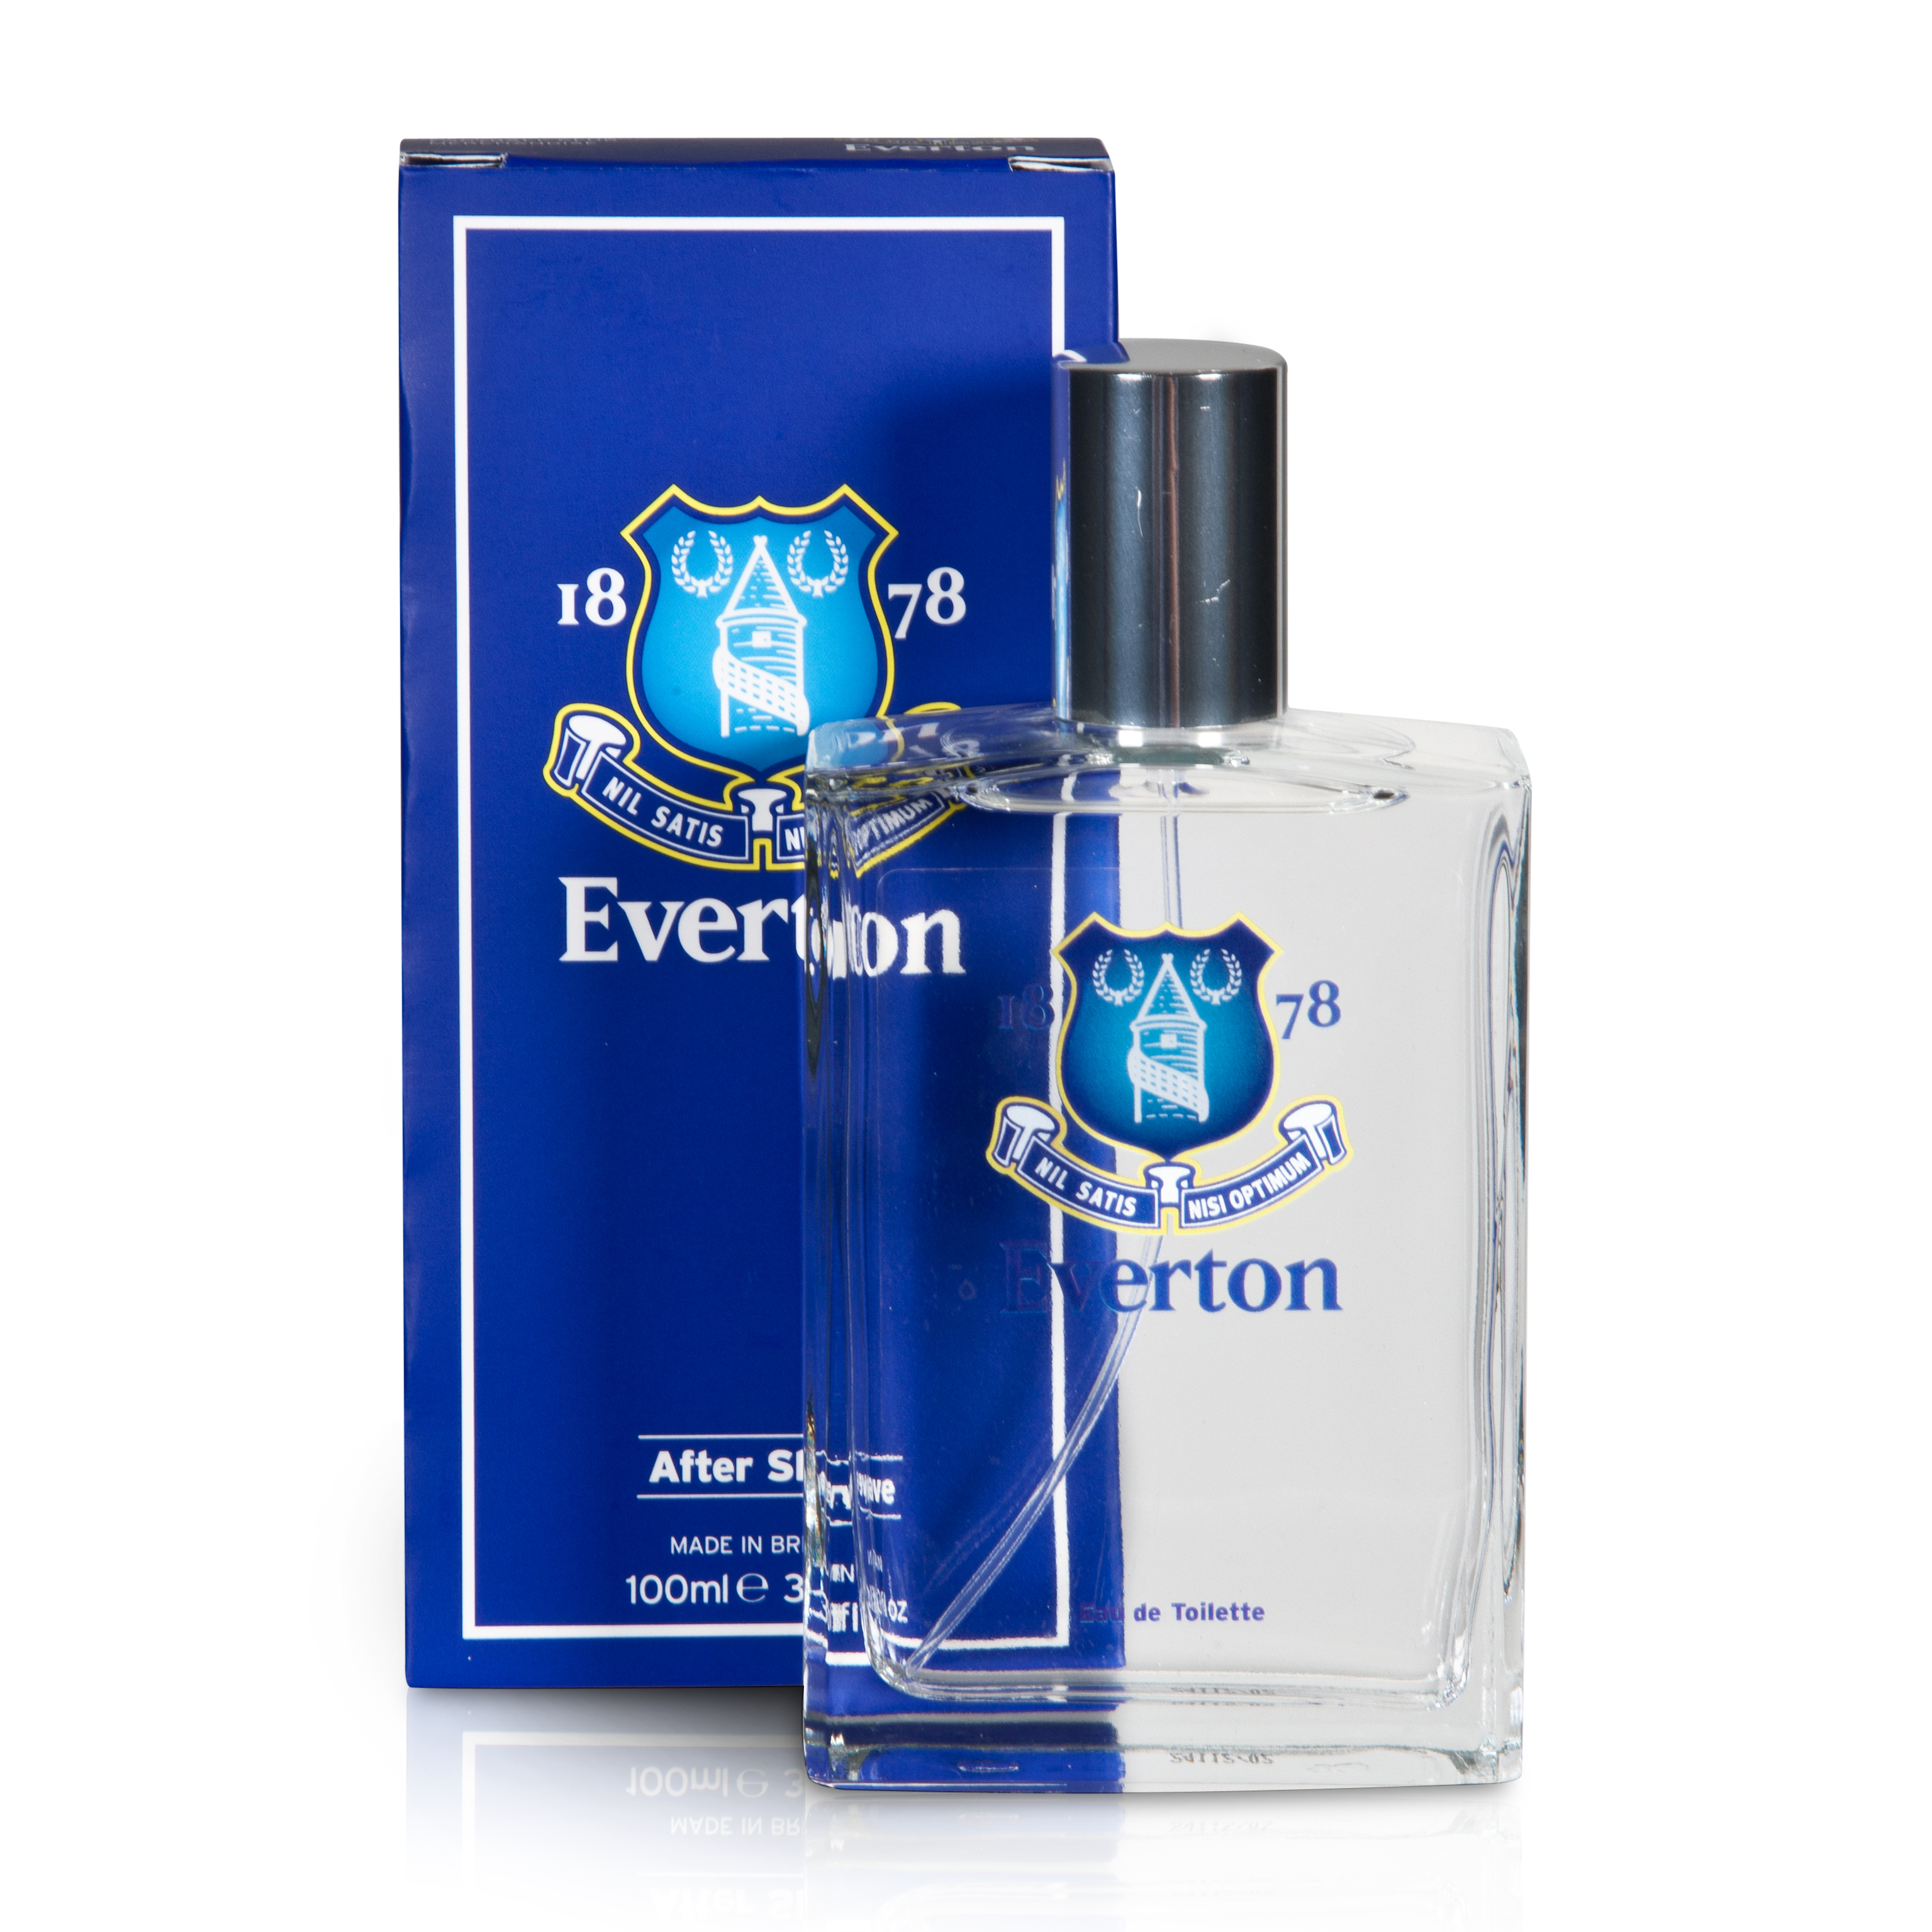 Everton After Shave